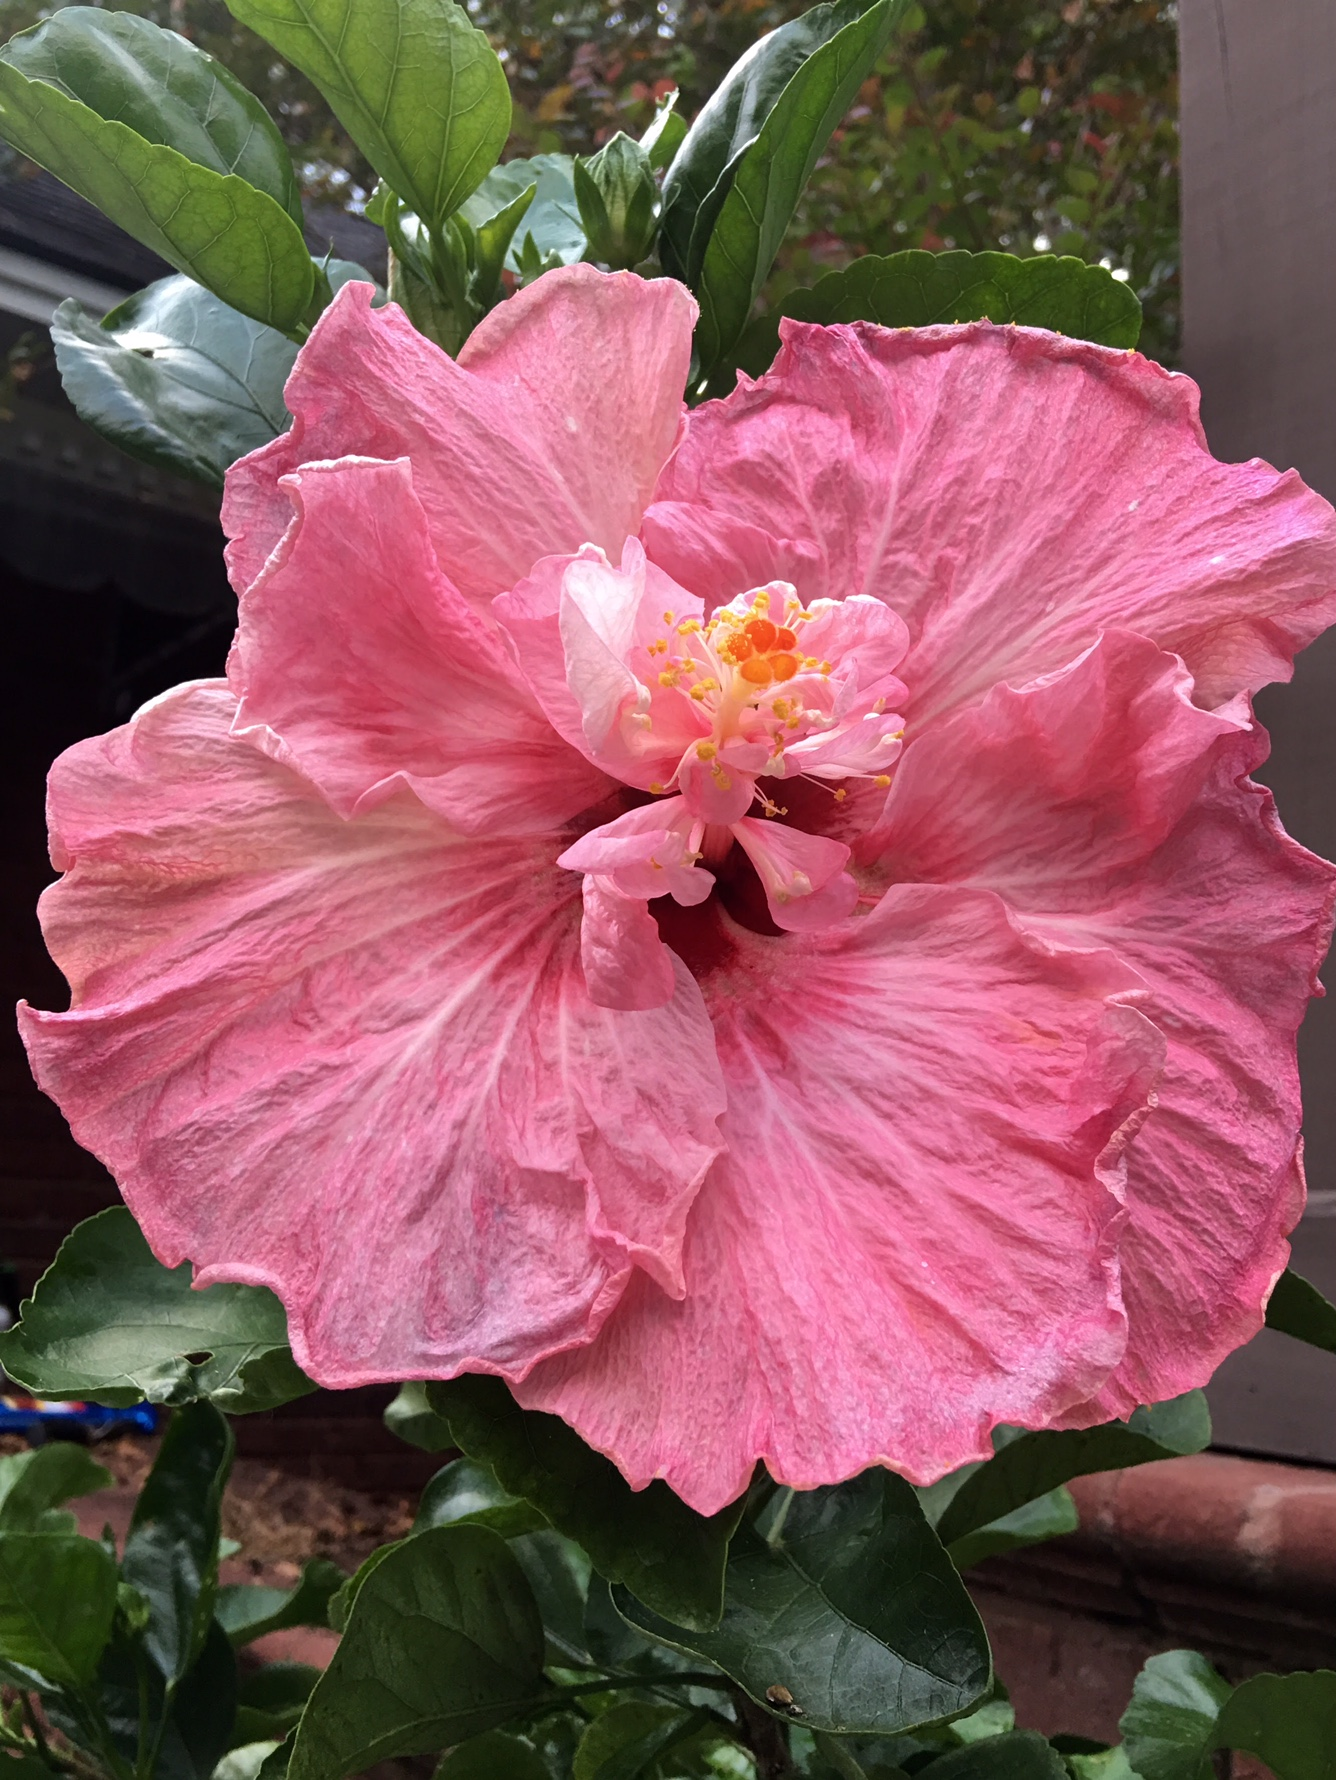 'South Pacific Sipper' hibiscus flowers can approach 9 inches in width. The plant produces flowers so large they seem to defy logic.